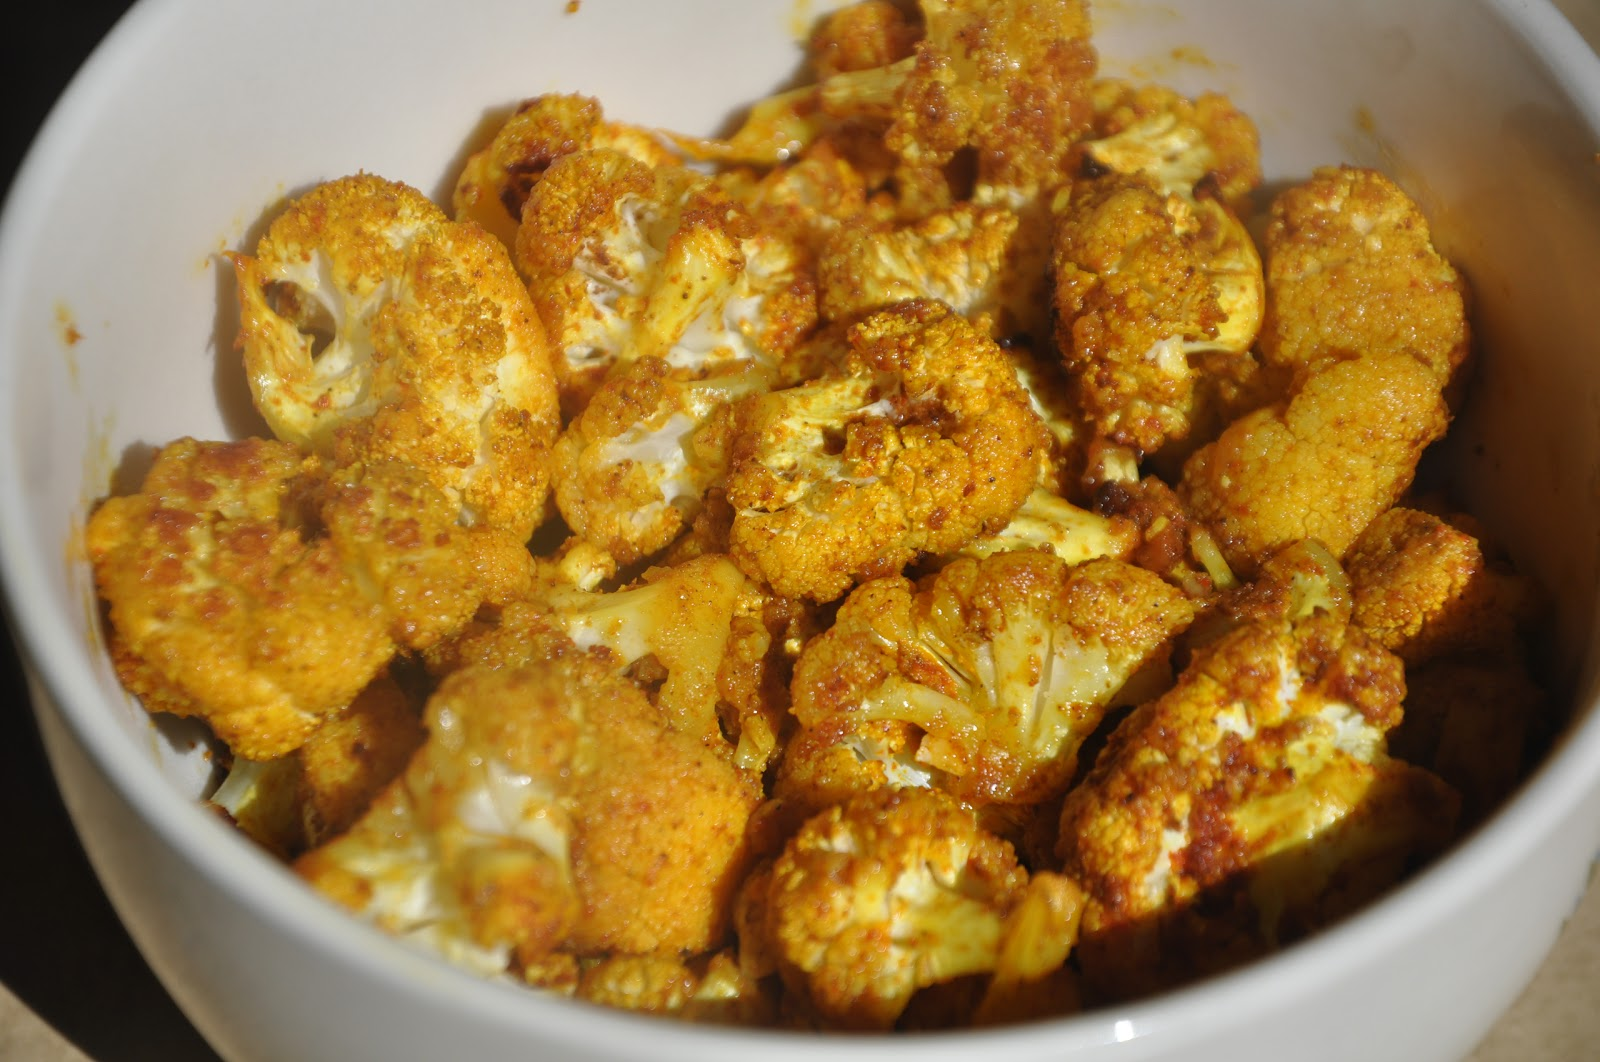 ... in Western India: Oven Baked Cauliflower Curry - Cooking by hubby